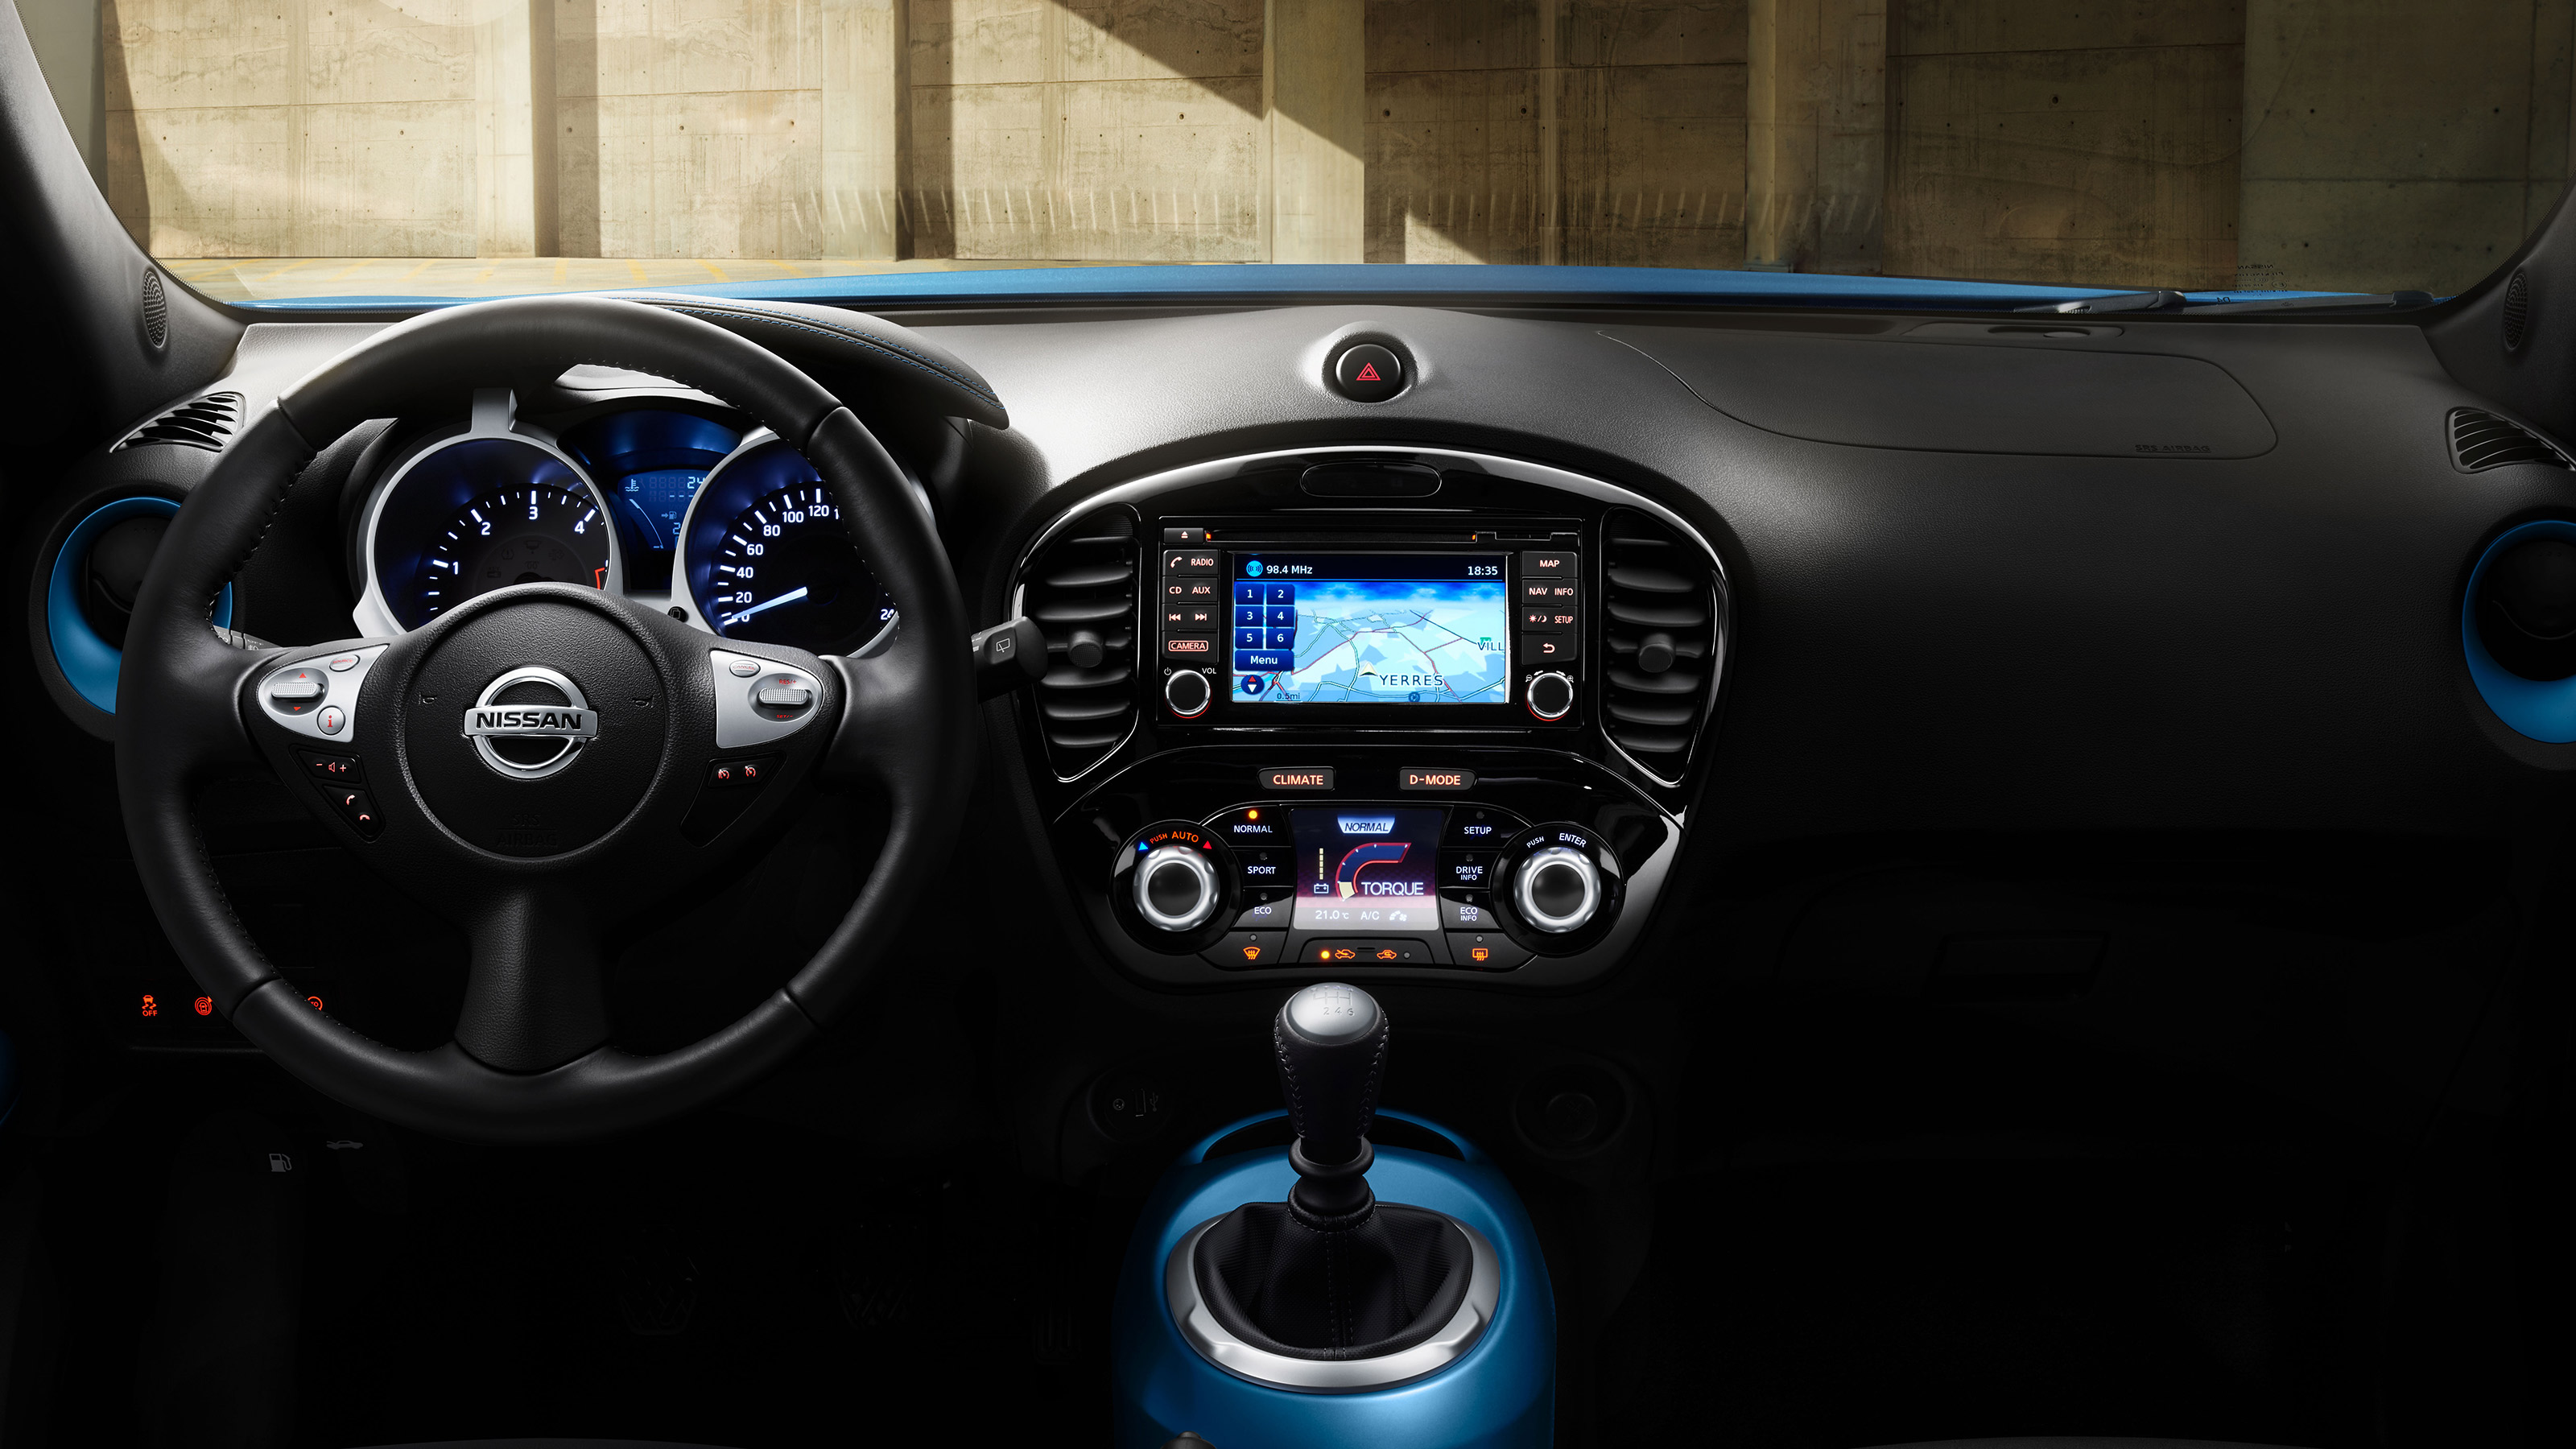 New Nissan Juke interior view of the dashboard